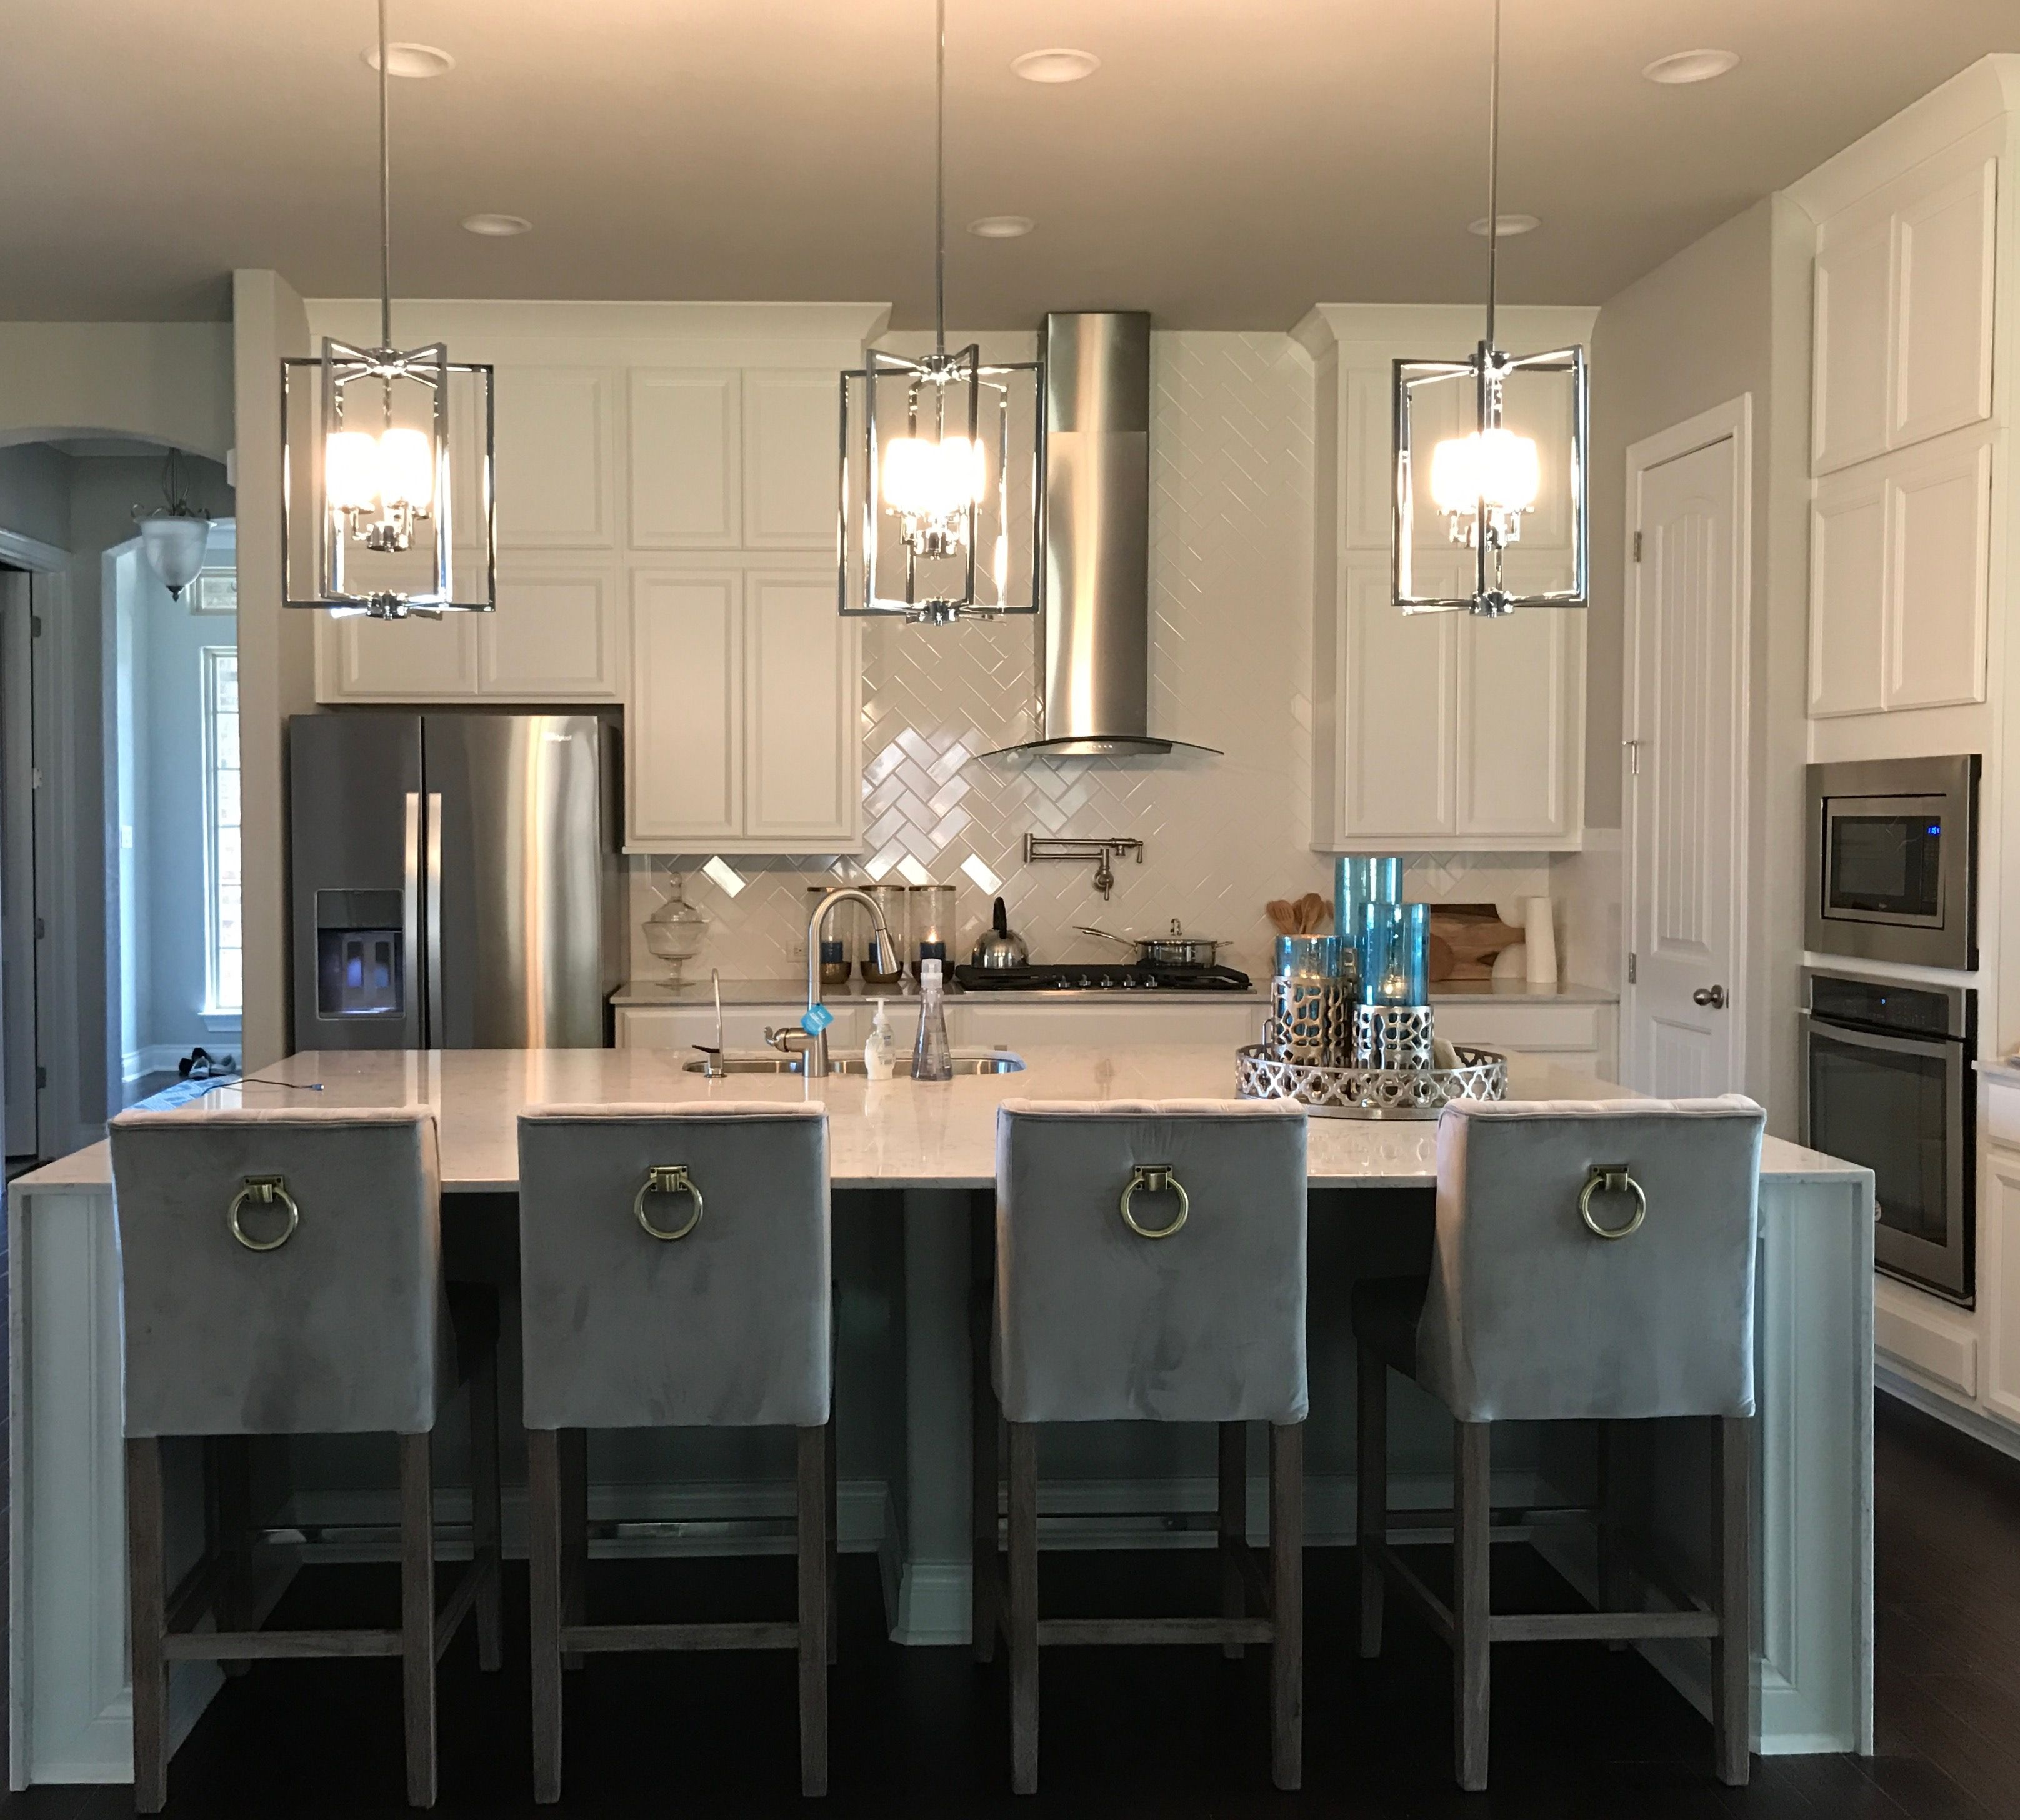 New Kitchen  Nicole Miller Counter Height Bar Stools Lyra Silestone  Counter Tops With Waterfall